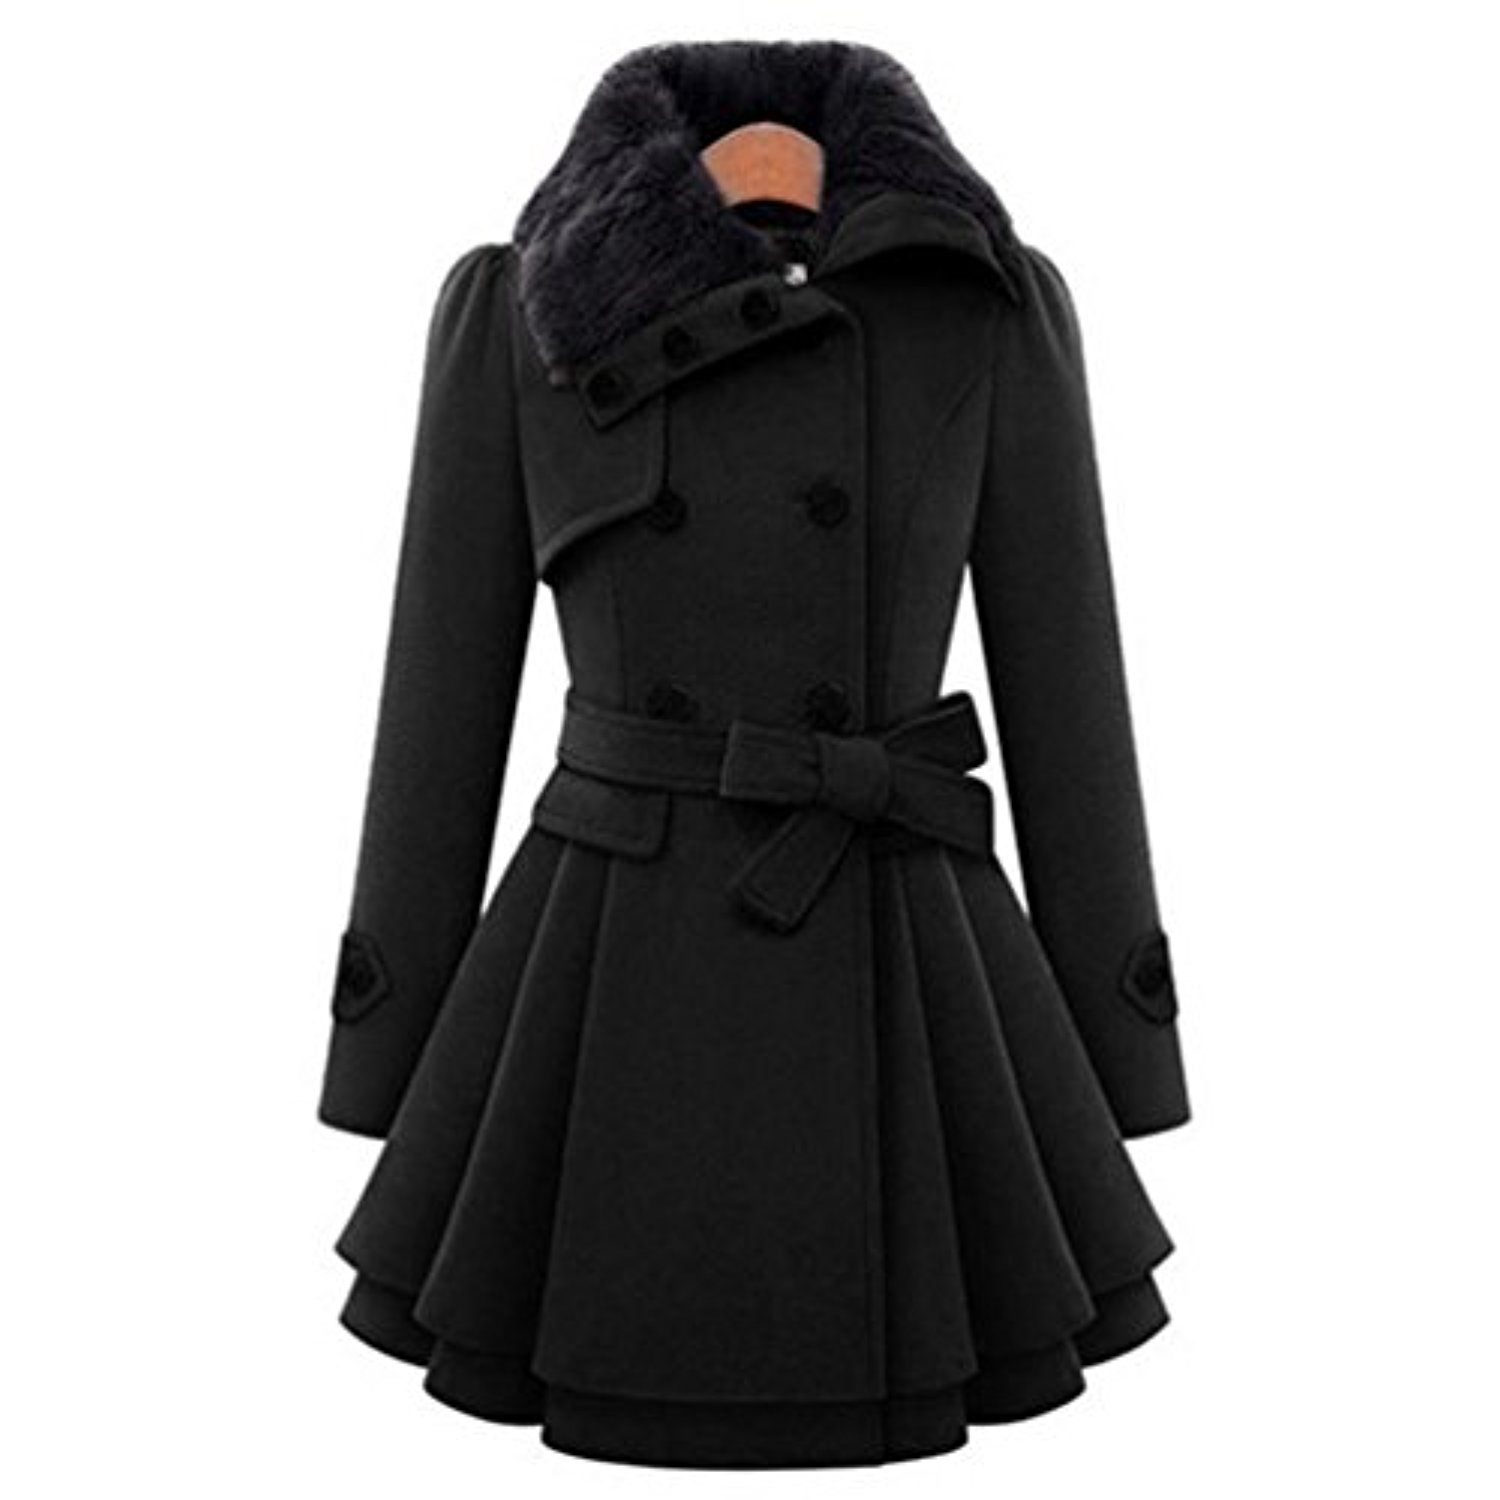 grande taille manteau femme long fausse fourrure hiver chaud vintage chic longra parka femme. Black Bedroom Furniture Sets. Home Design Ideas